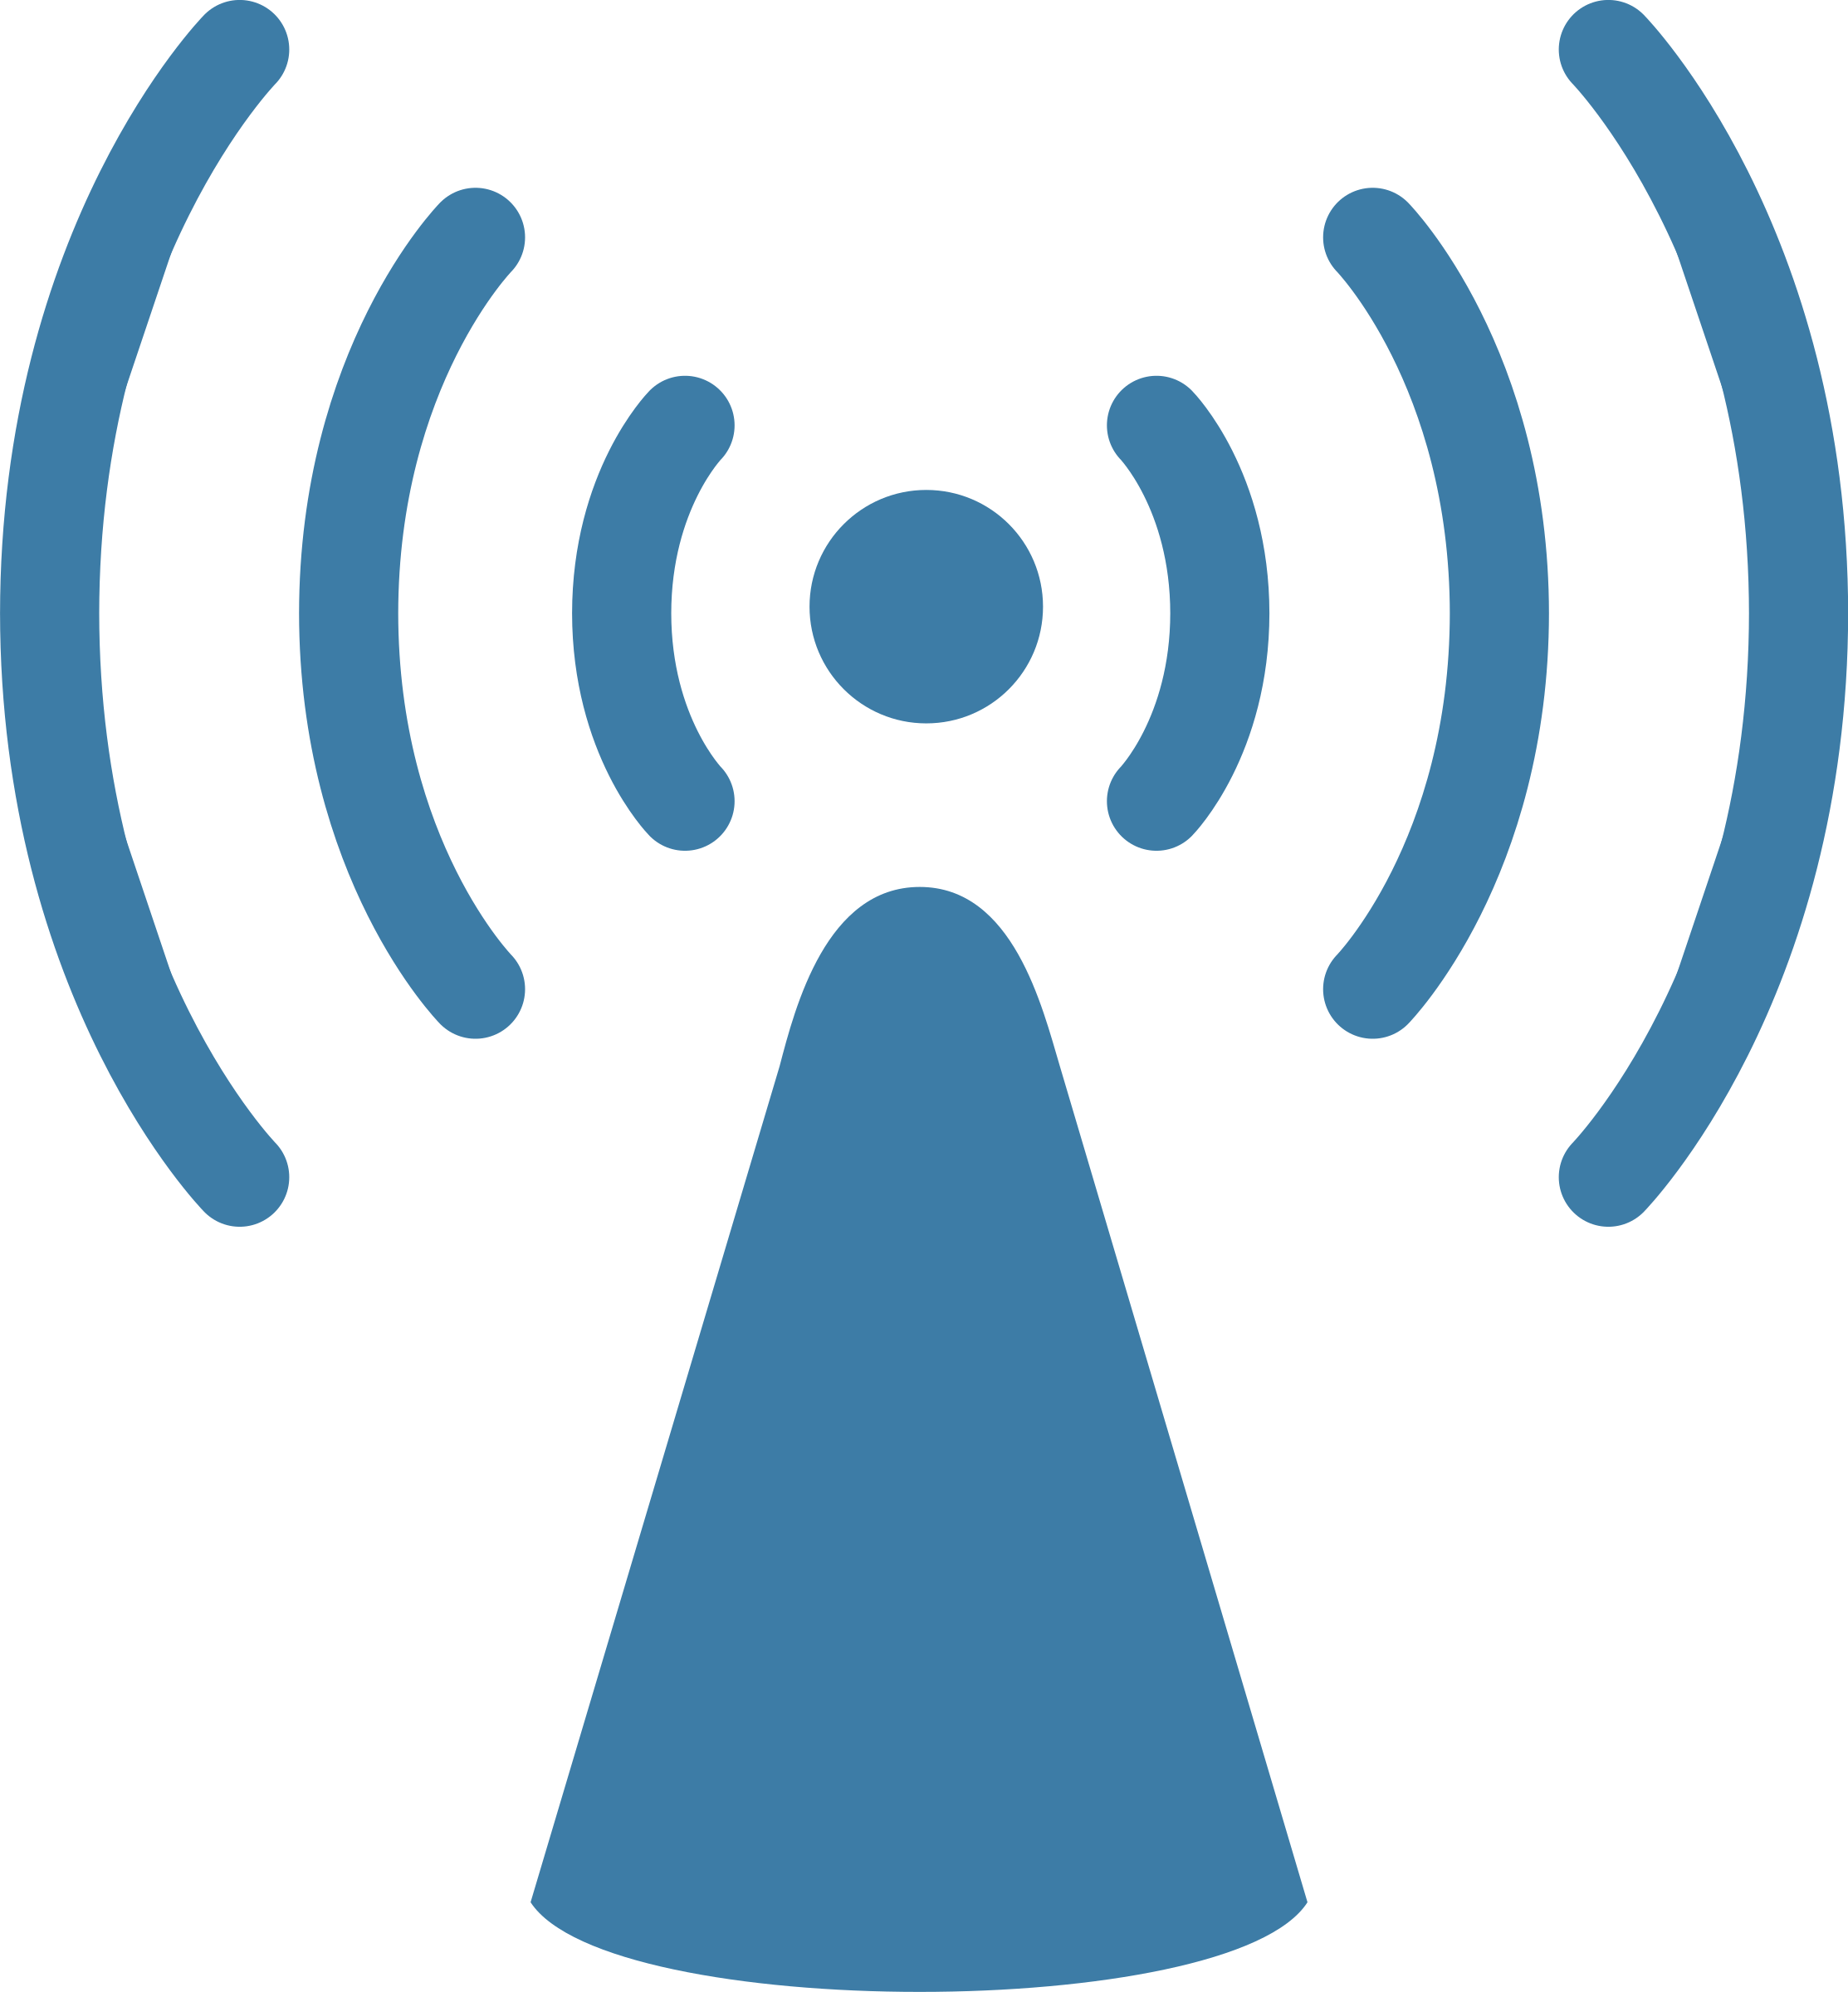 Clipart - Wireless access point clipart black and white download